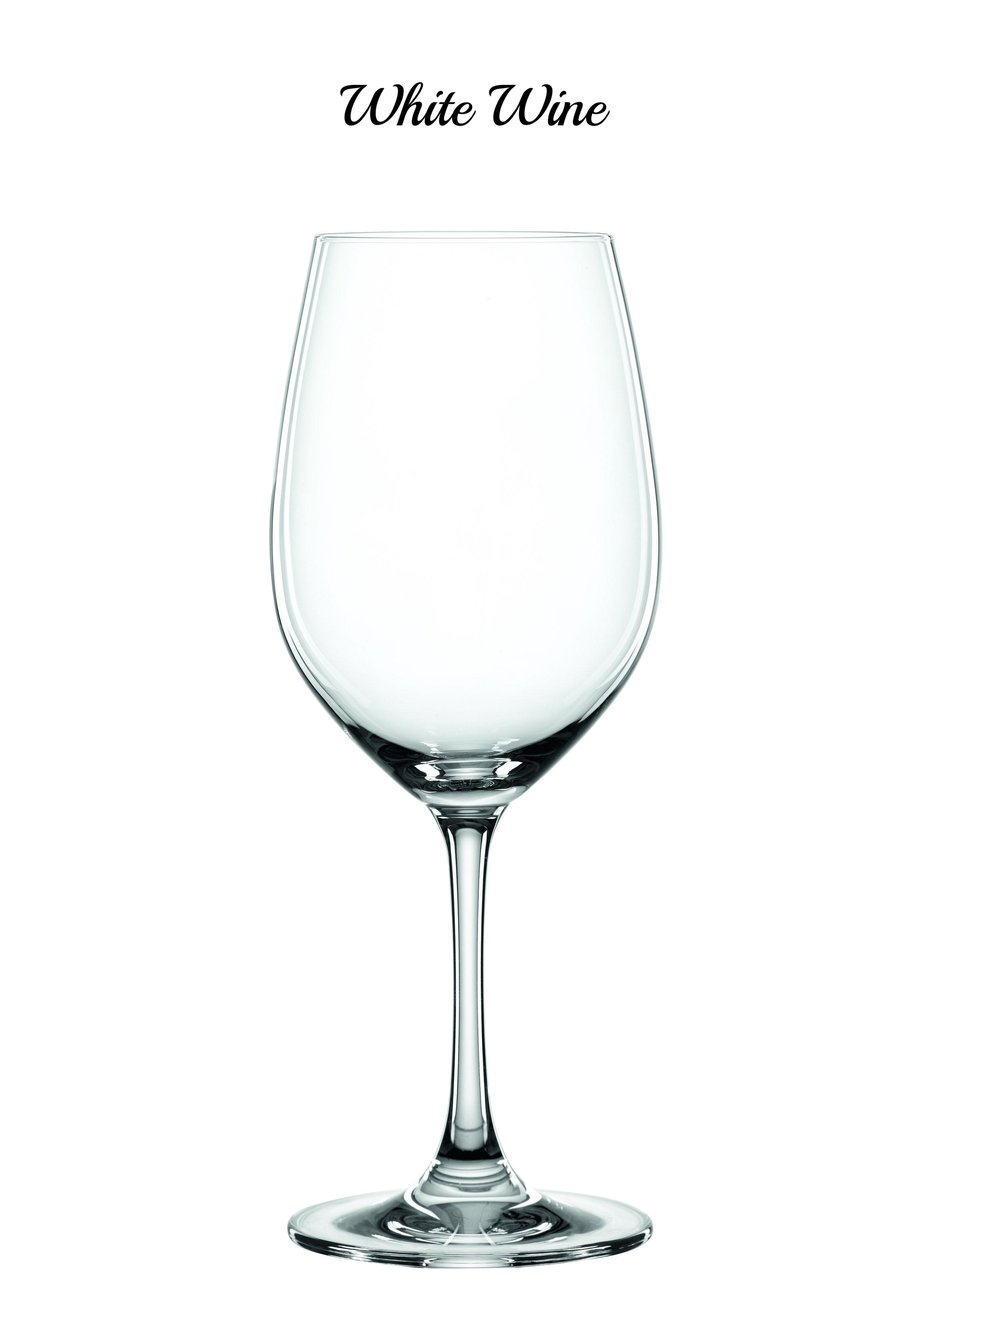 4098002_1 Winelovers White.jpg